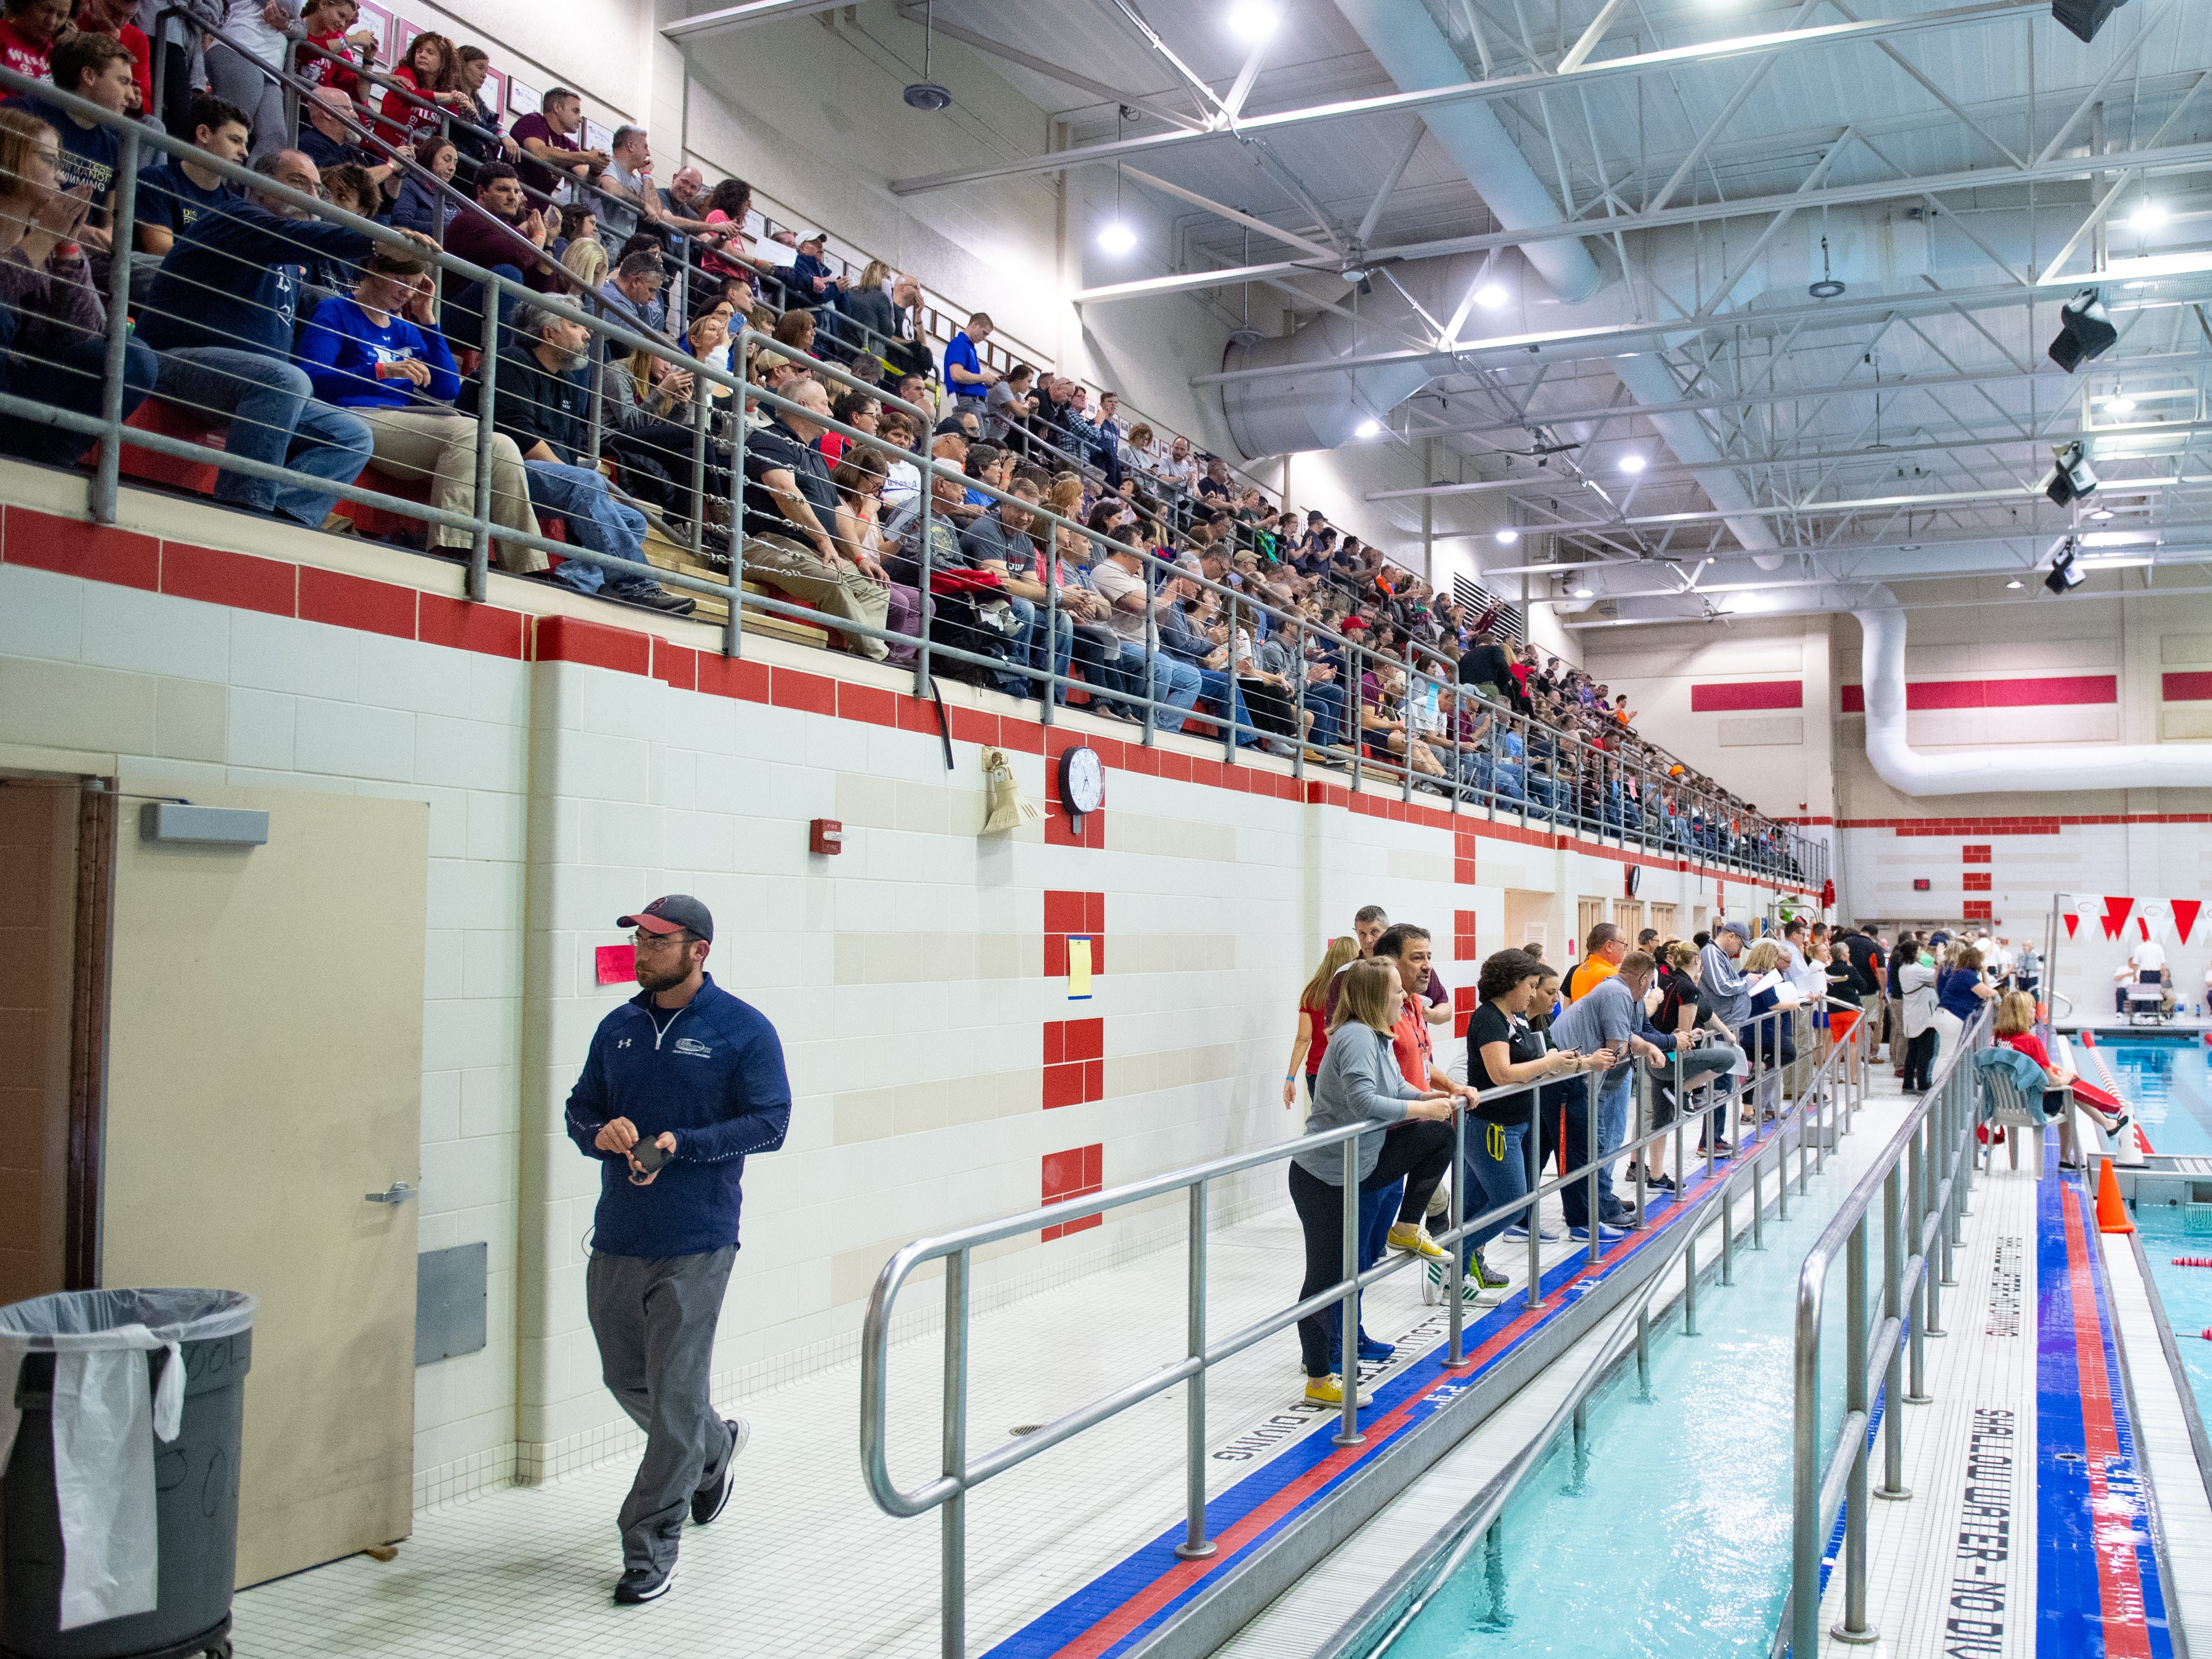 The upper deck has standing room only during the PIAA District 3 Championships, March 1, 2019 at Cumberland Valley High School.